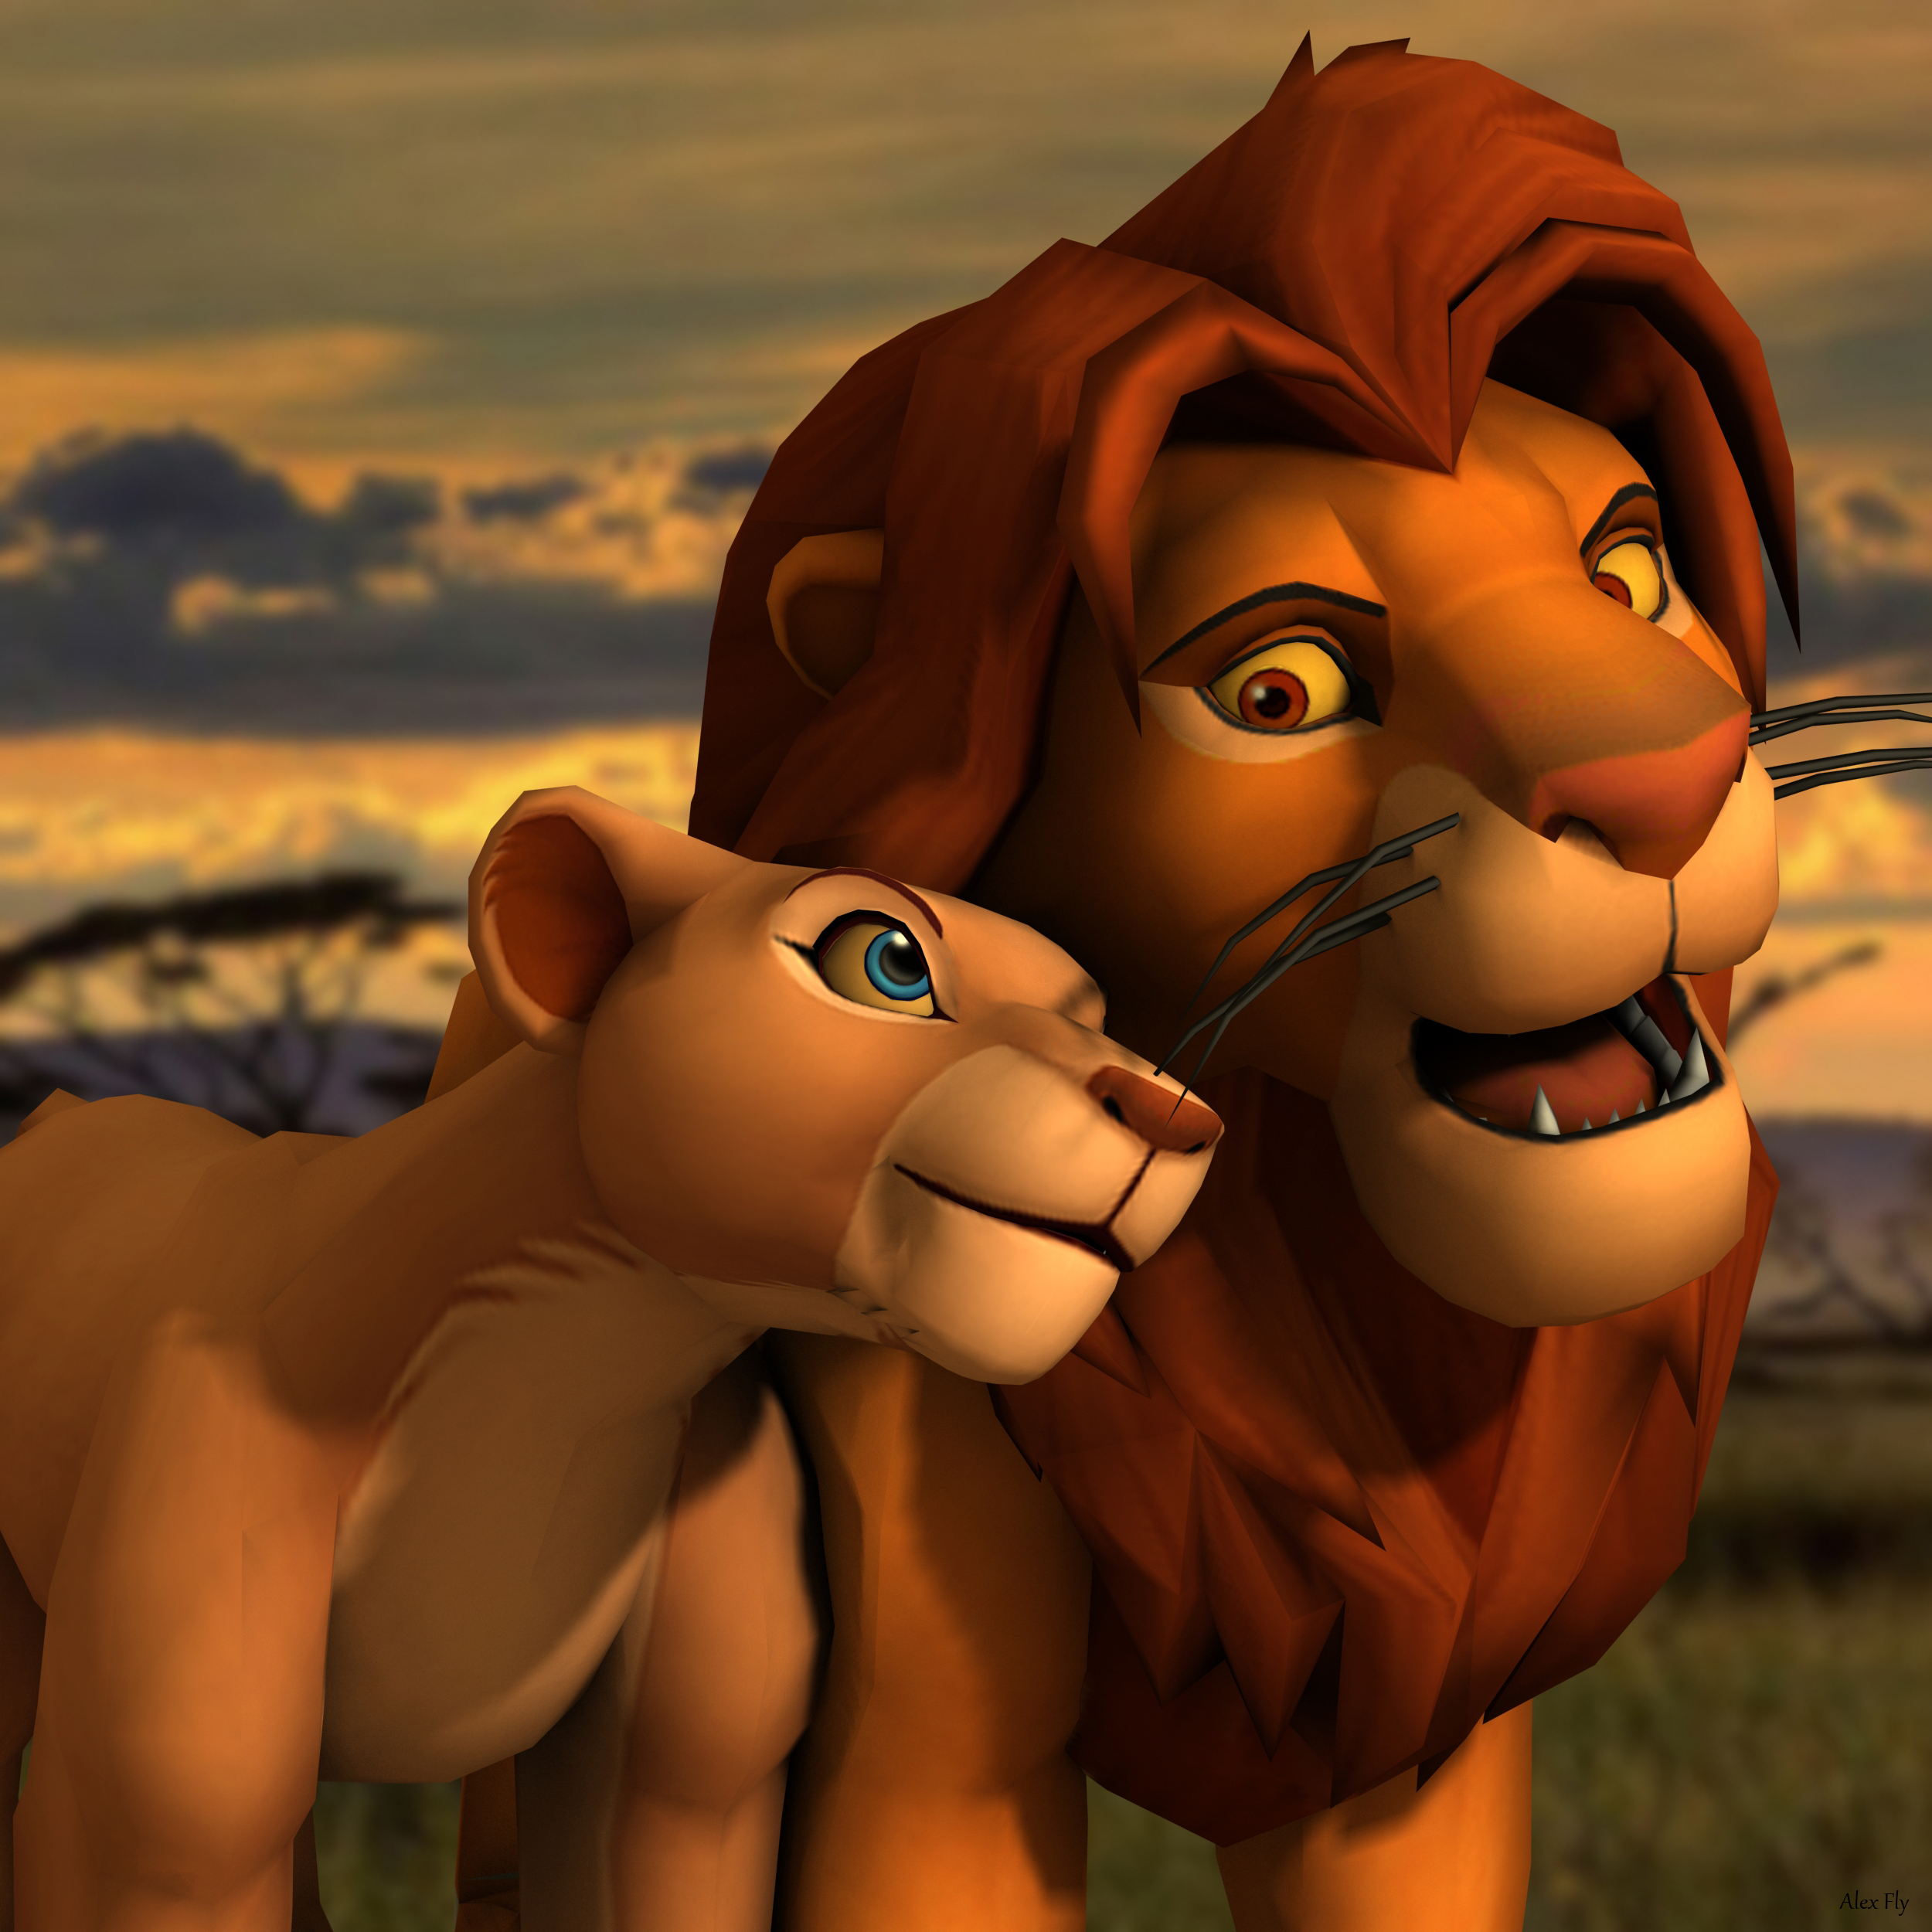 the lion king character analysis The lion king is a film produced by walt disney in 1994 (the lion king - disney wiki - wikia, nd) the whole film is based on the behaviour of wild african animals and inspired by hamlet by shakespeare and the lives of joseph and moses from the bible.